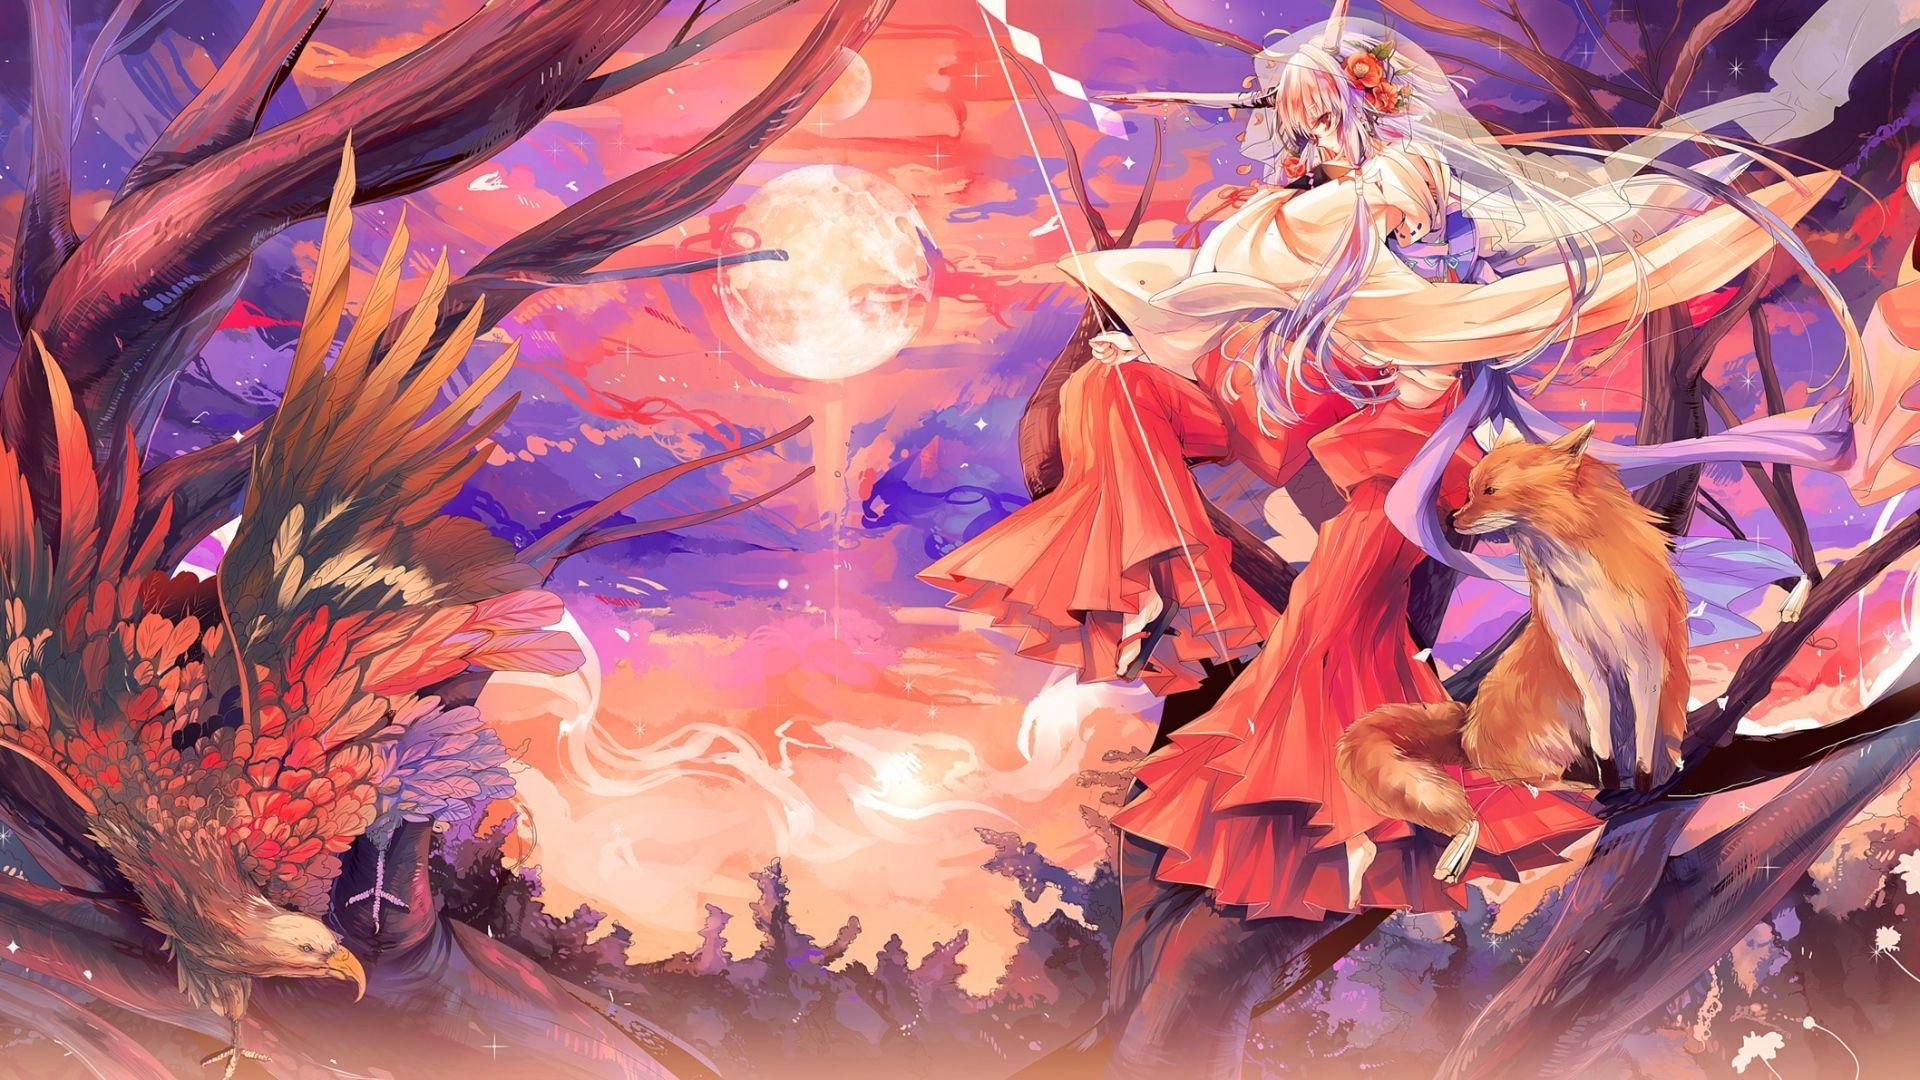 Anime Fox Demon Wallpapers Top Free Anime Fox Demon Backgrounds